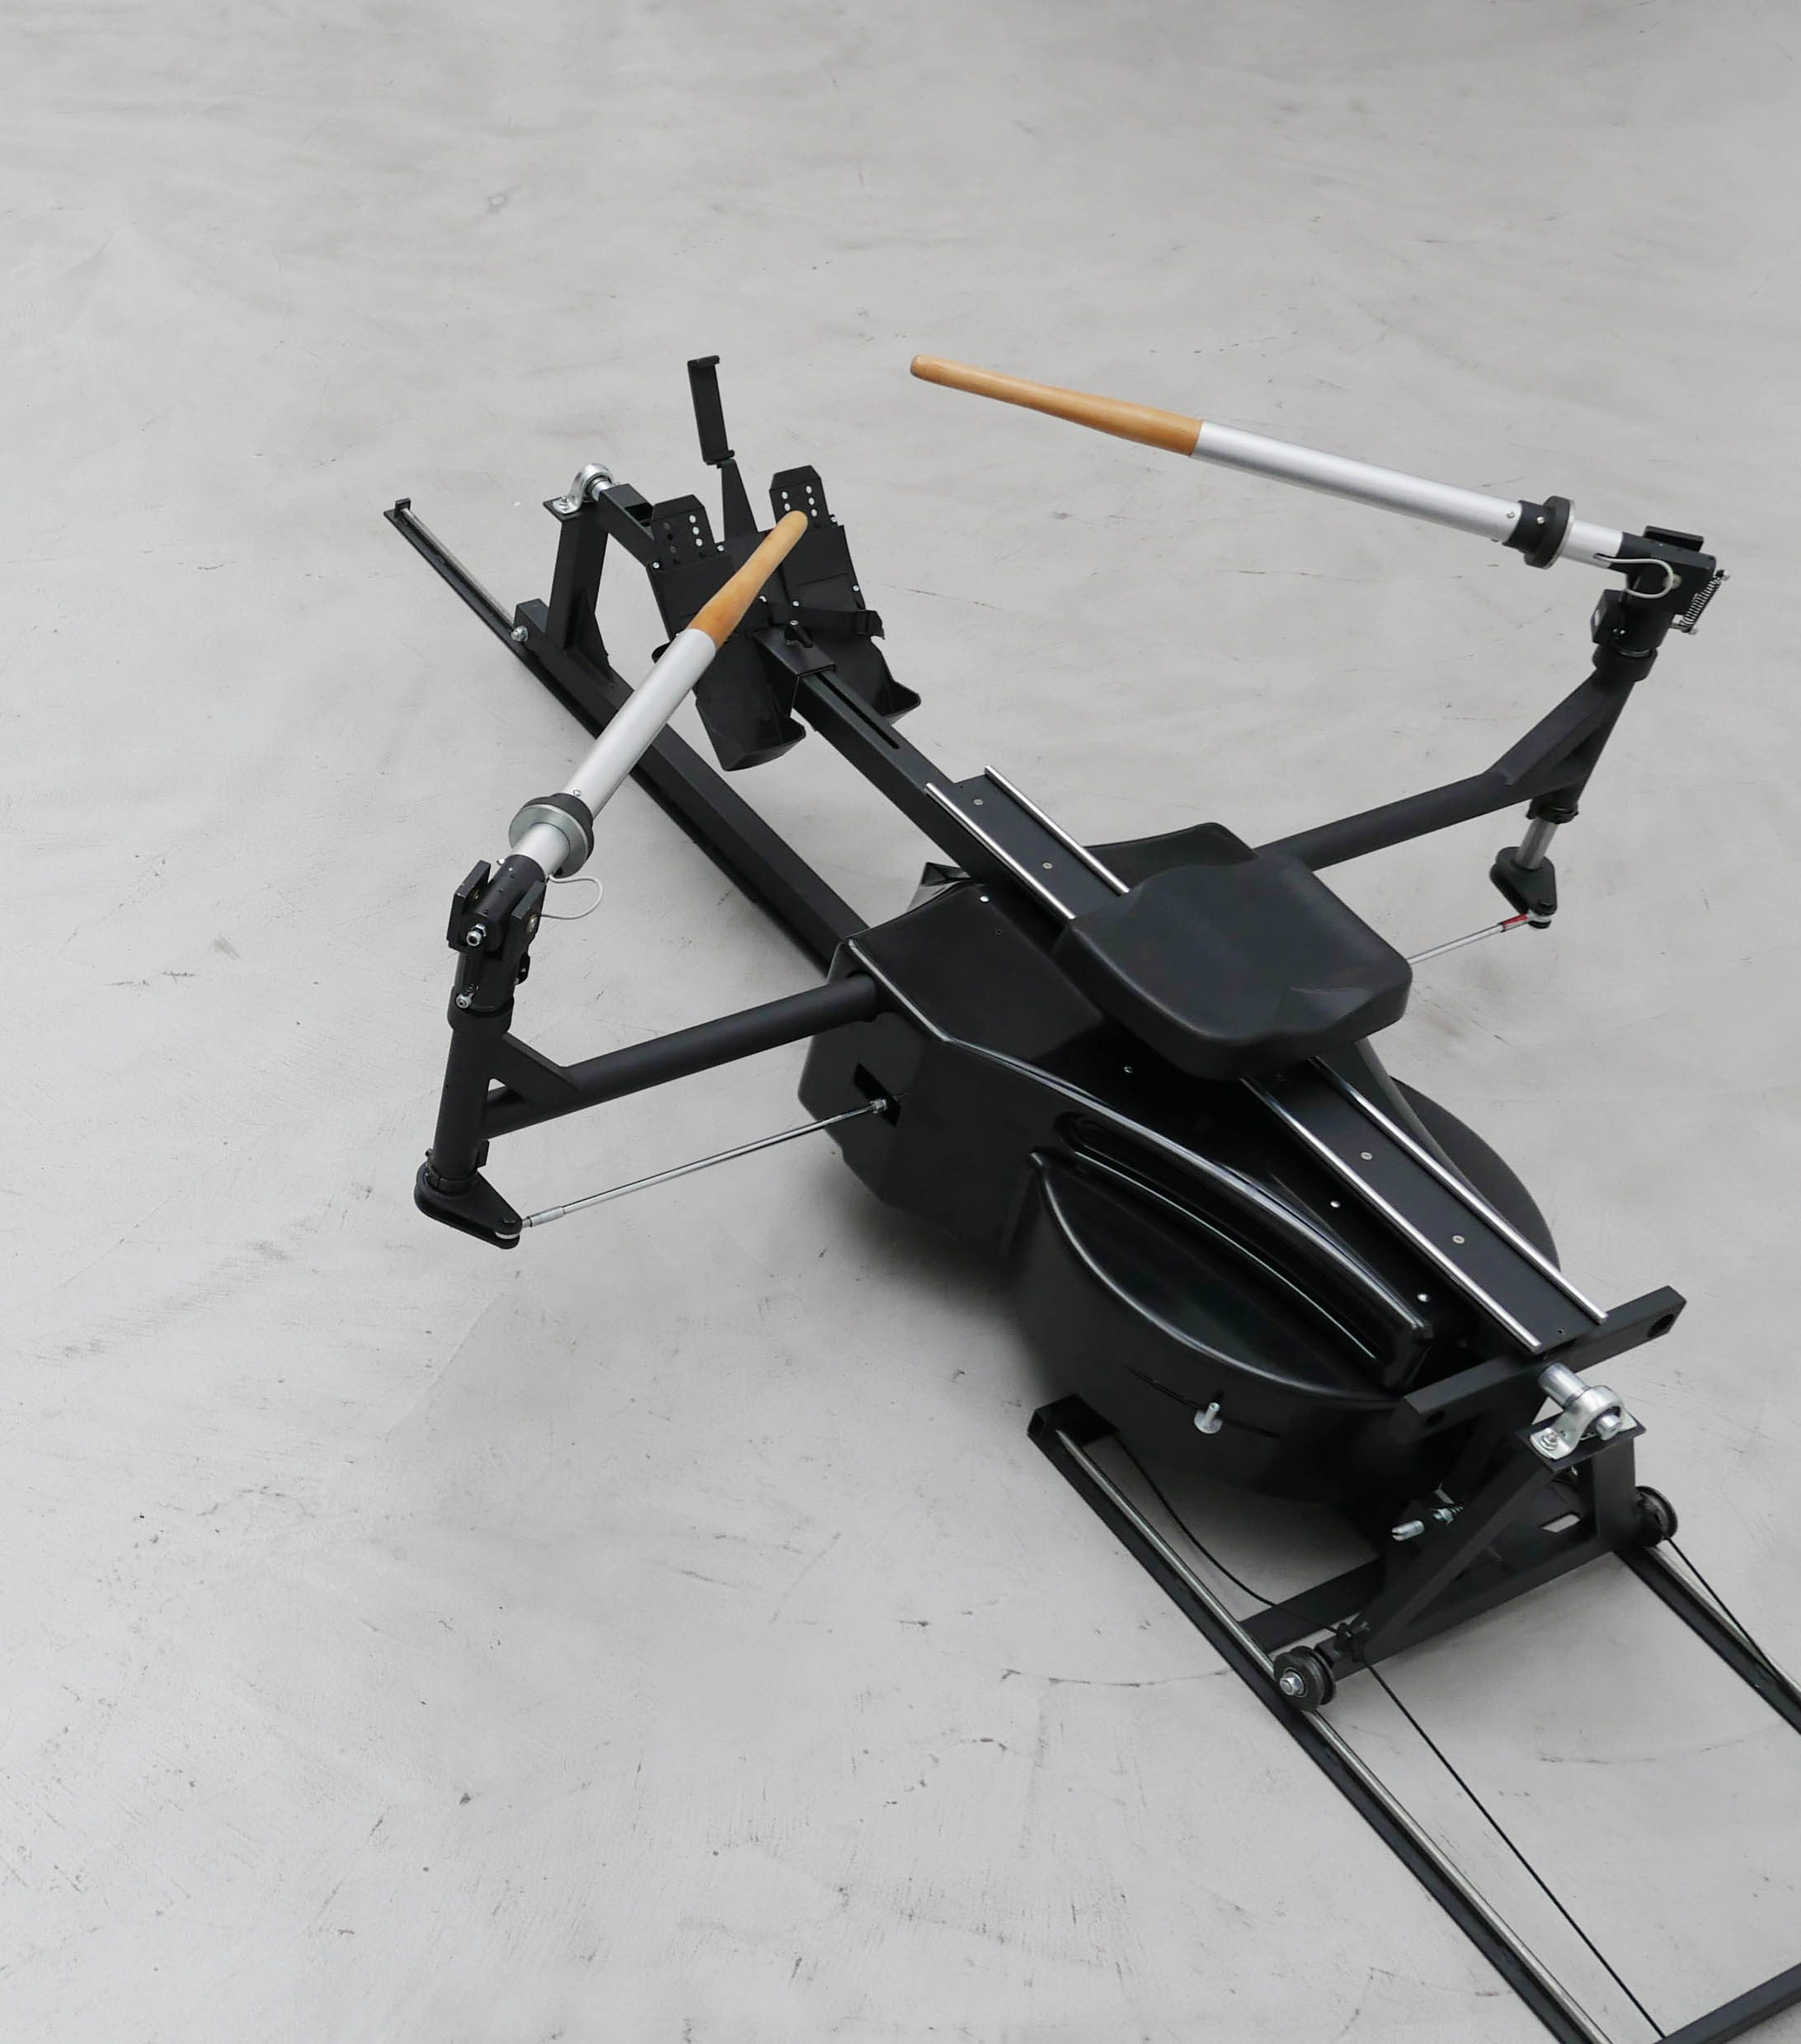 The Biorower S1pro is the most realistic indoor rowing and sculling experience